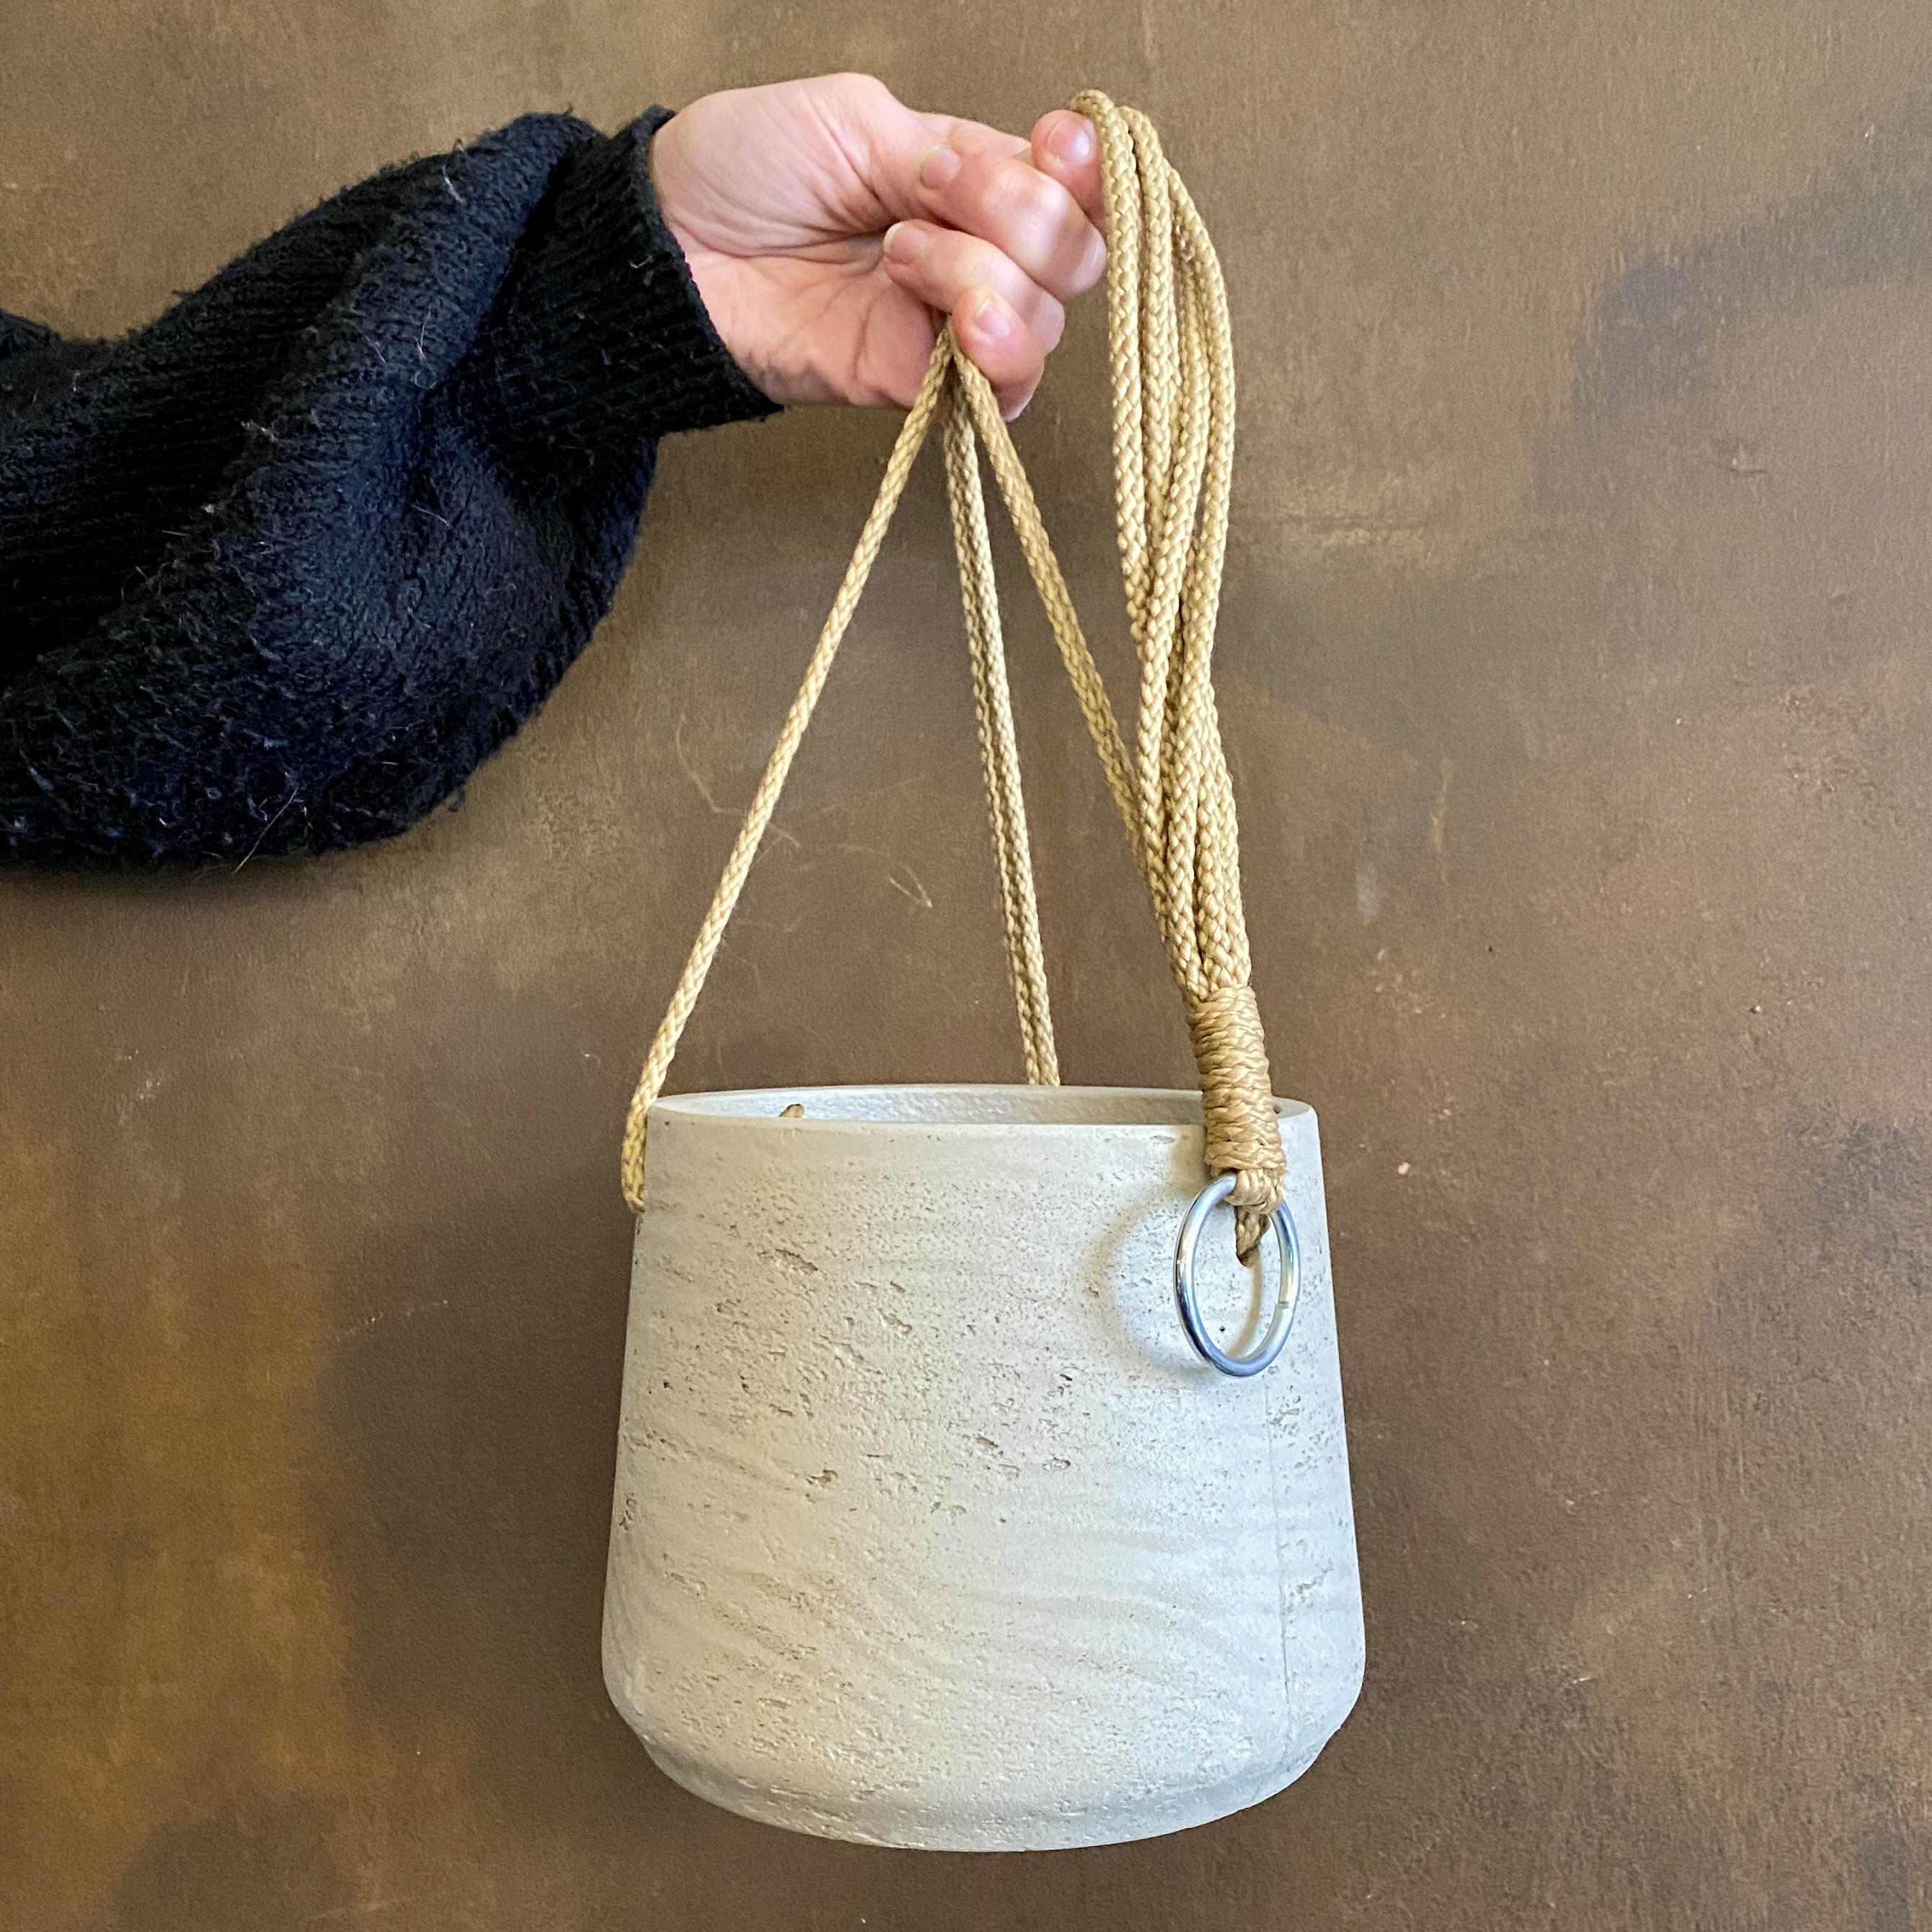 Tapered Pot (hanging) - Stone Washed